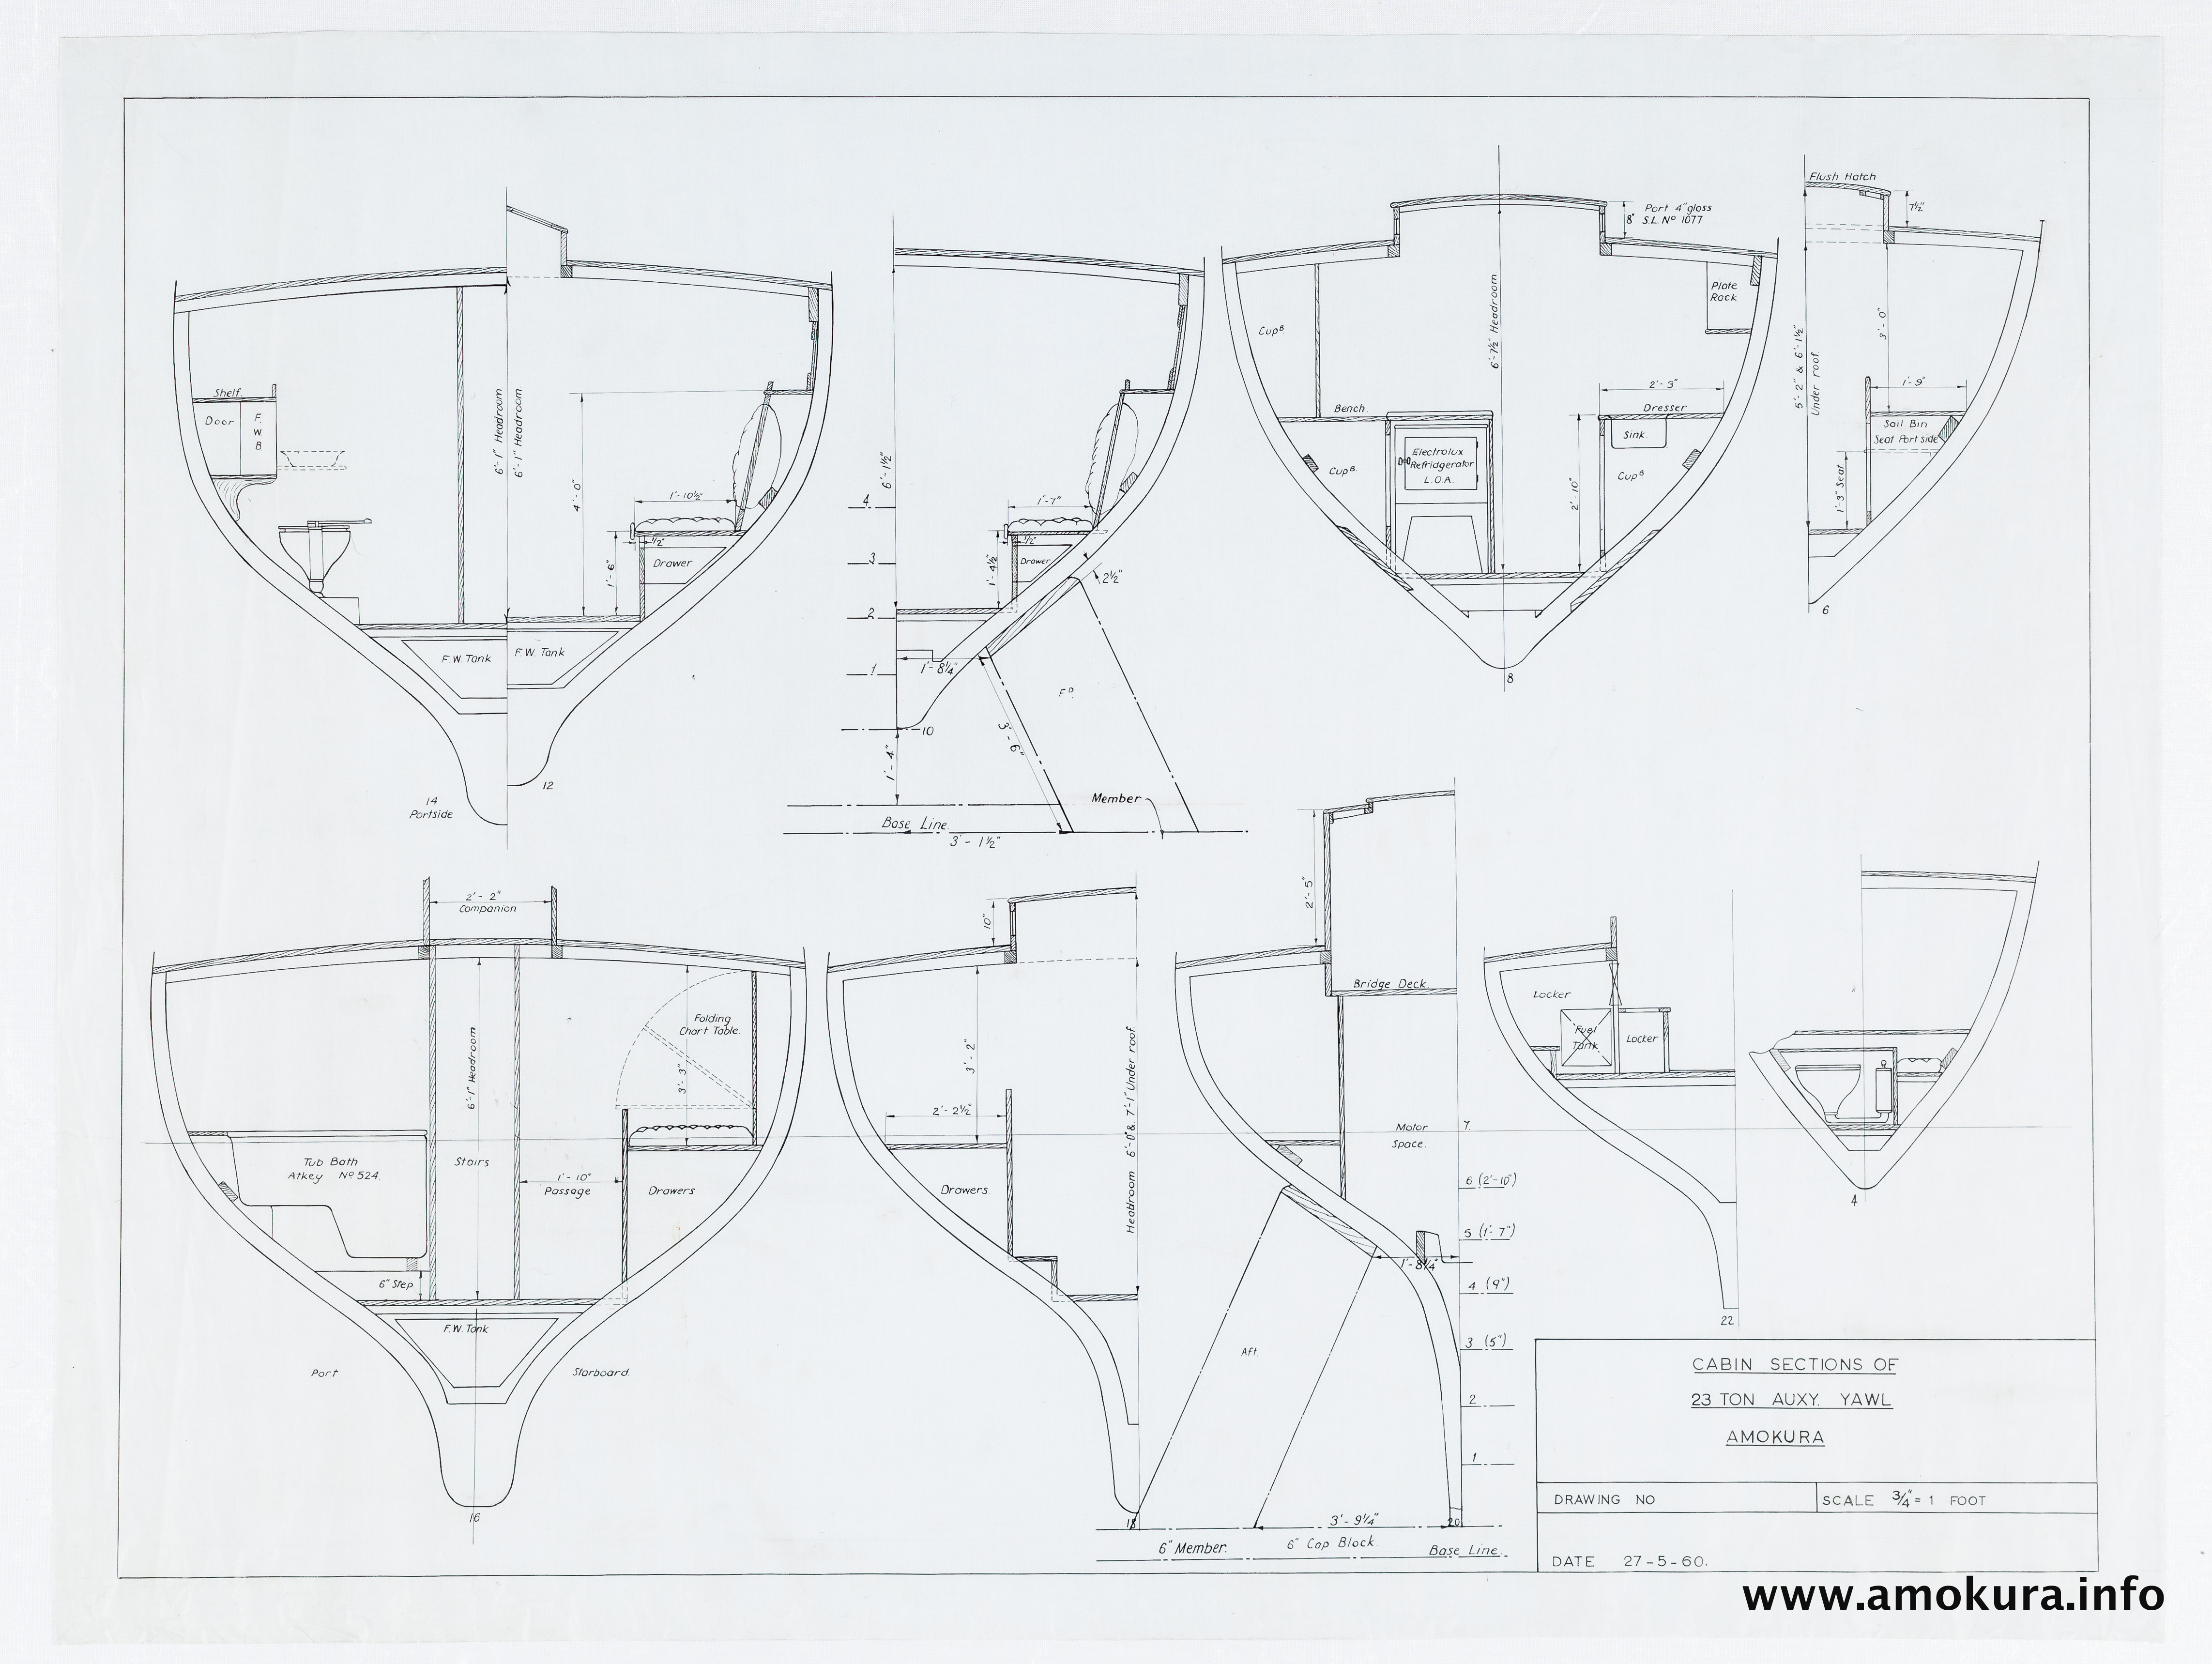 Cabin sections drawing (1960)